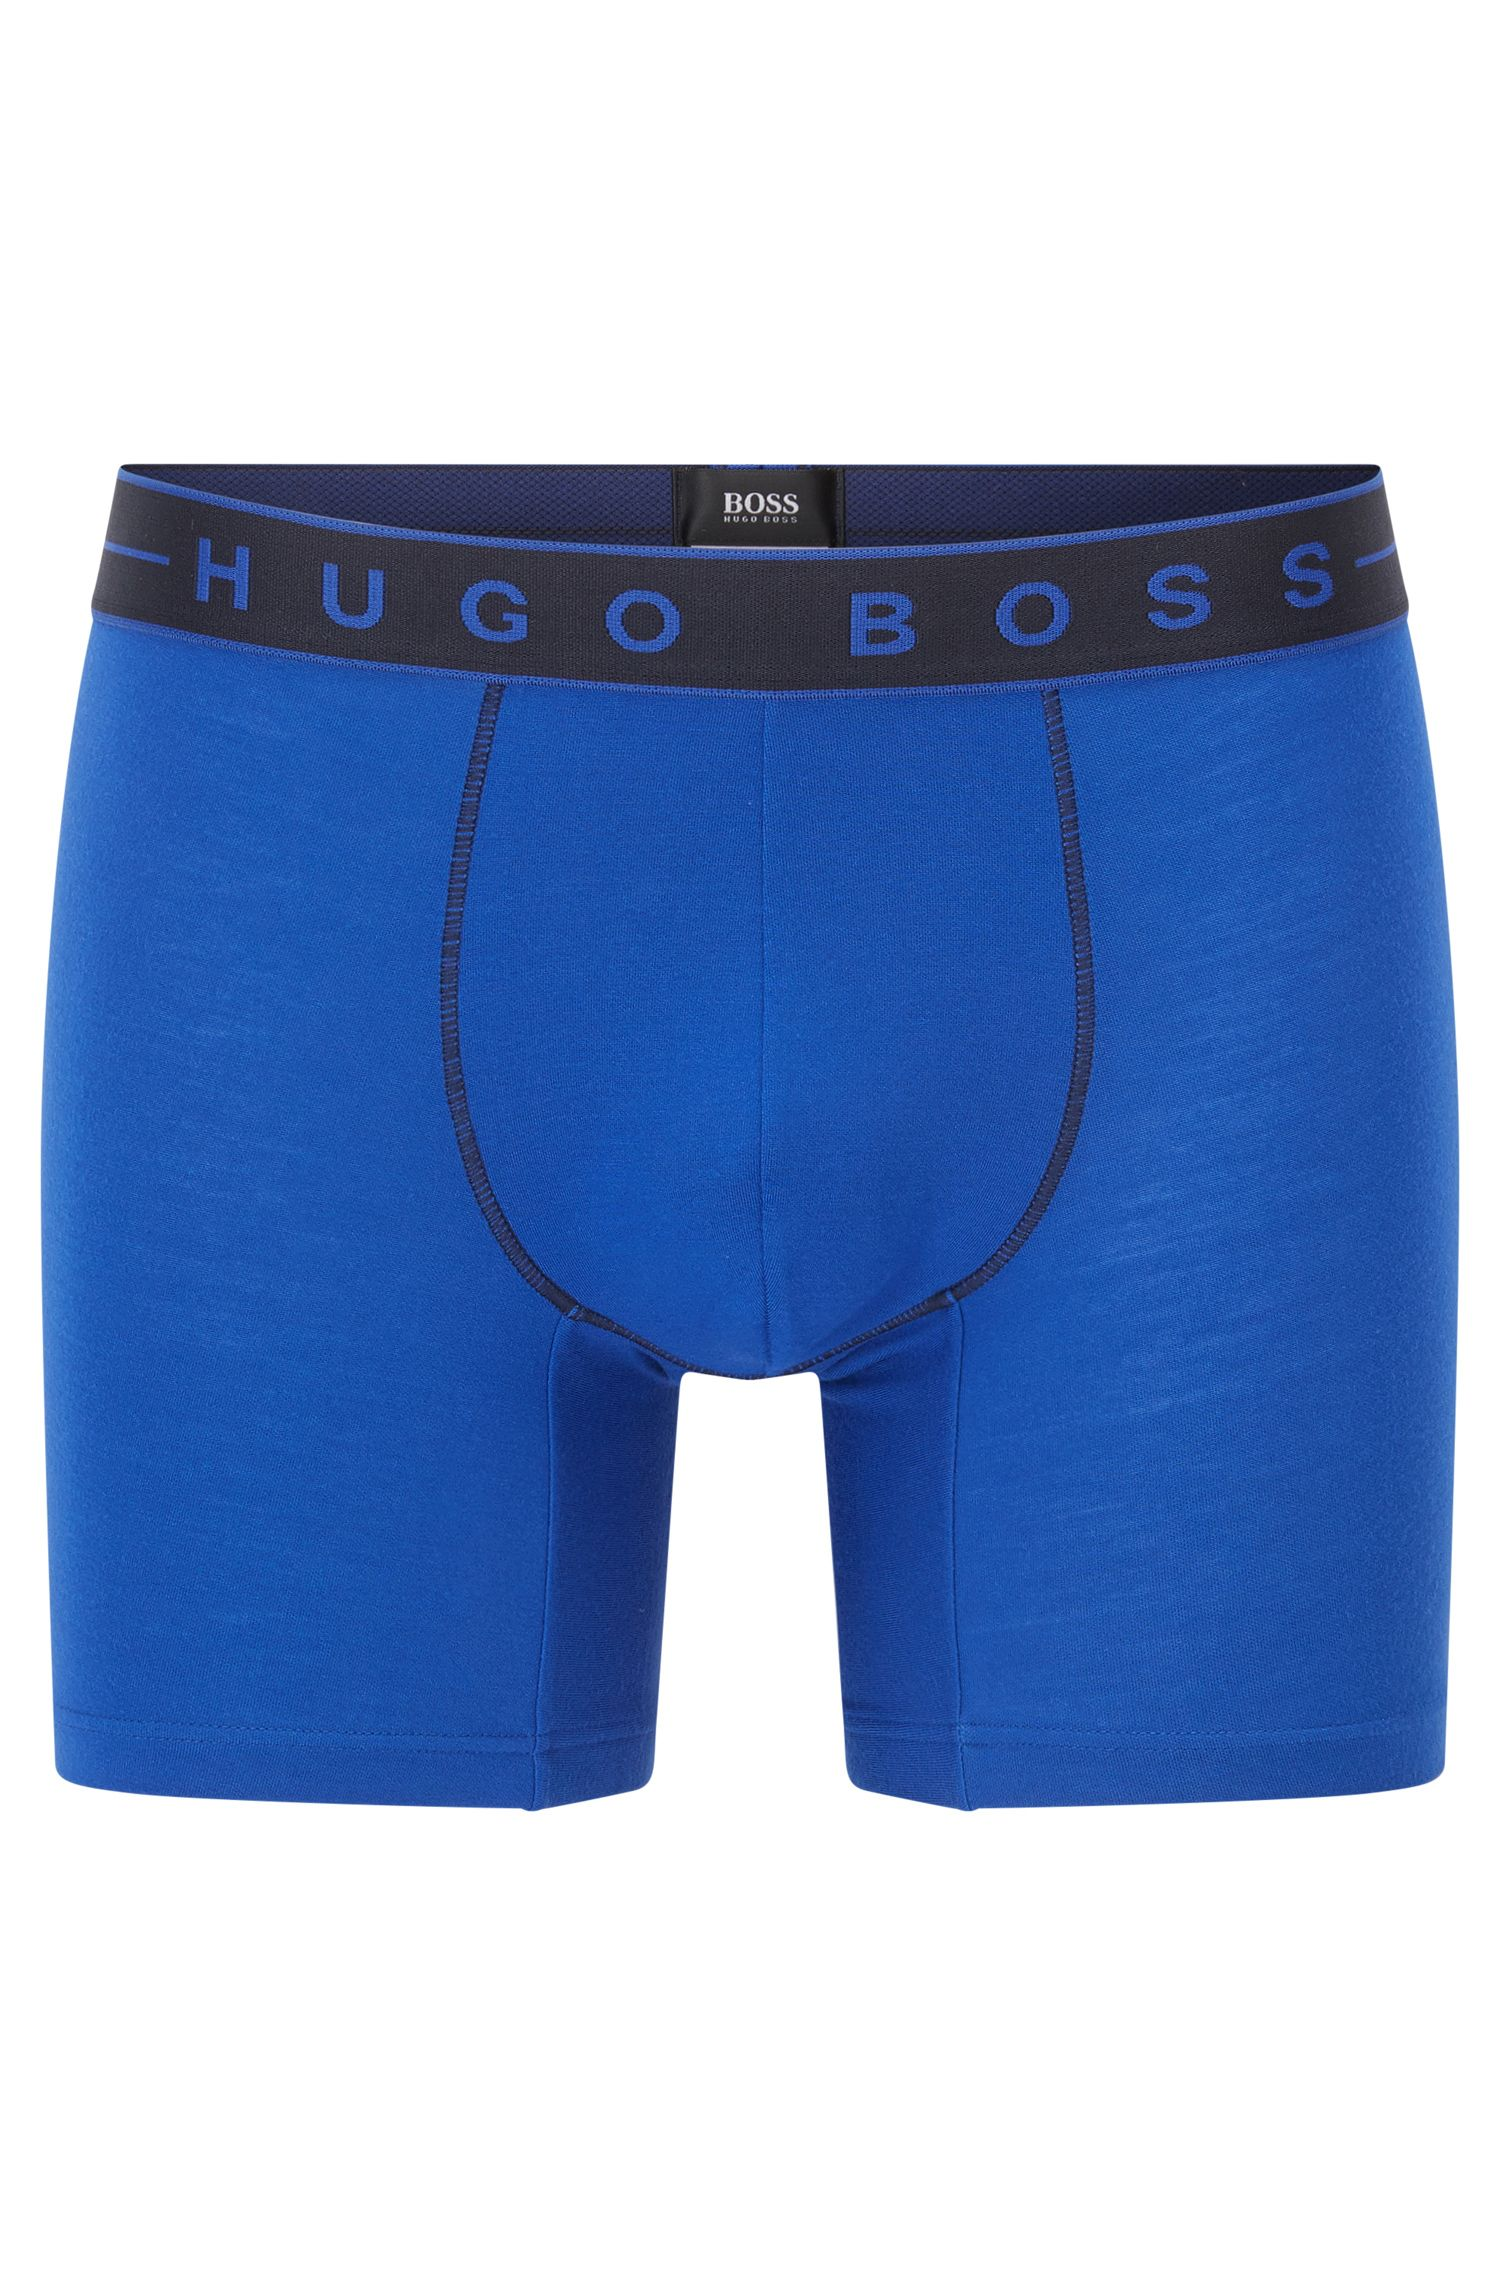 Microfiber Boxer Brief | Boxer Brief 2 Tone